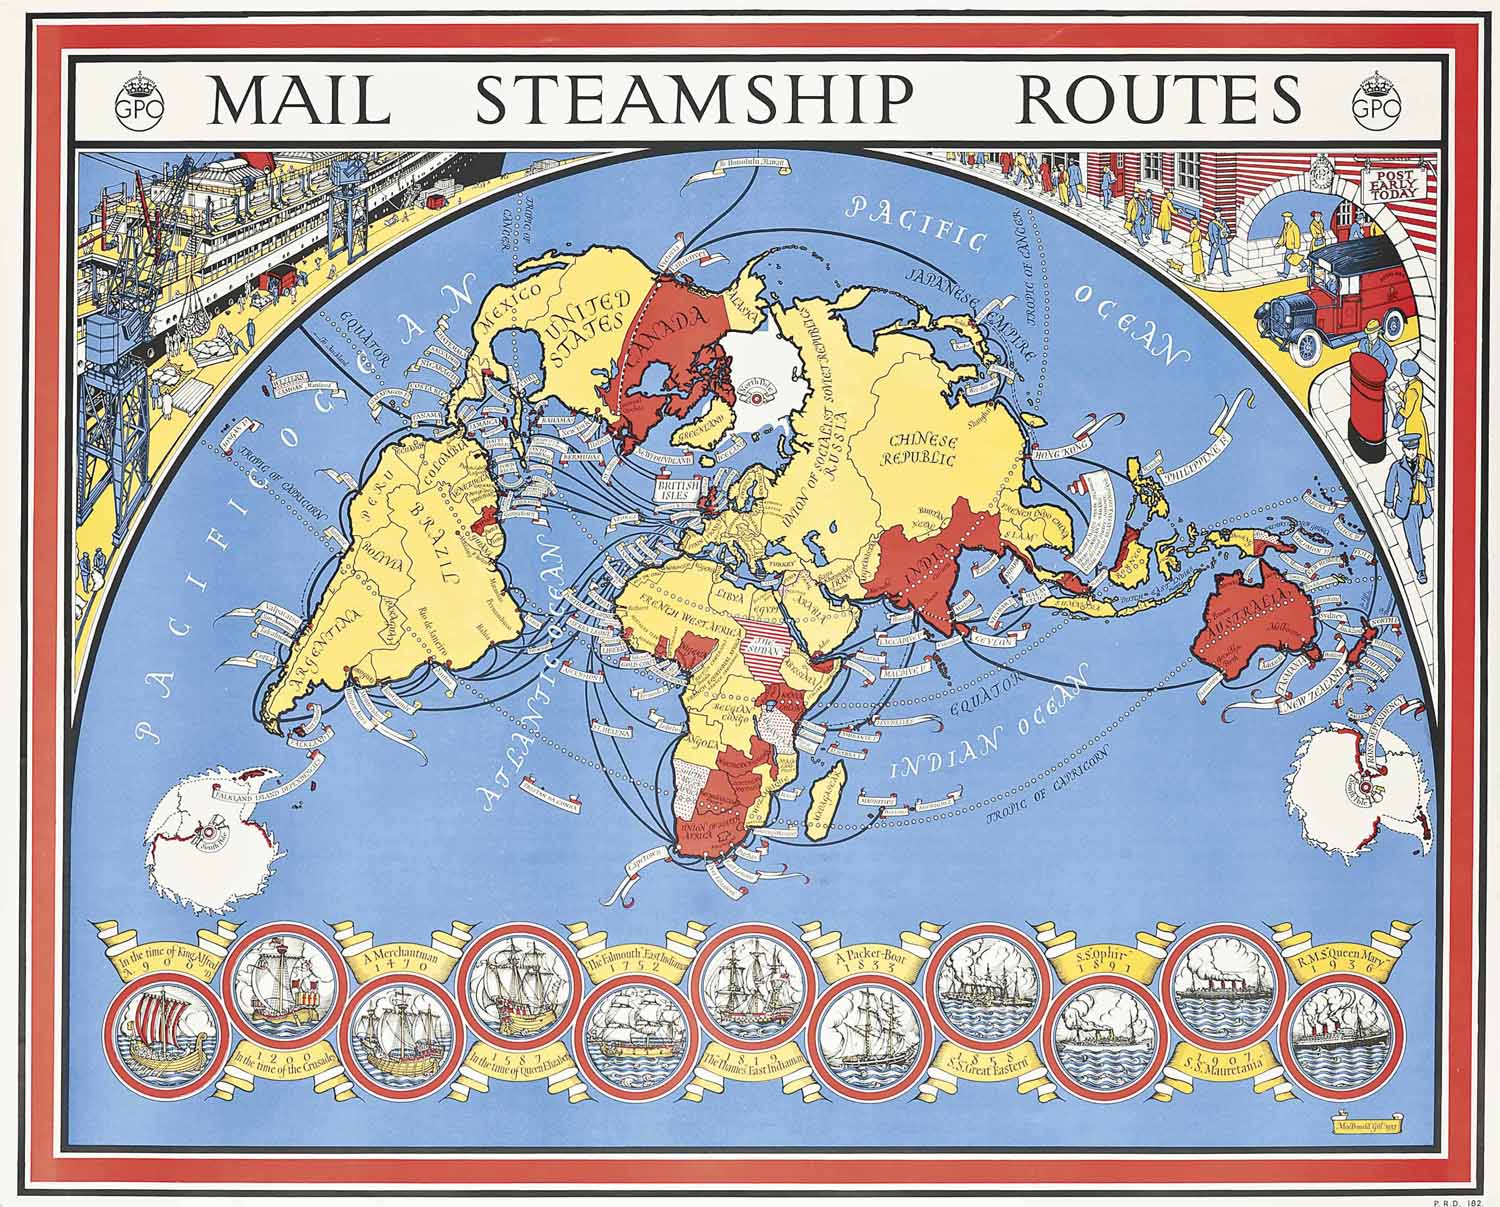 MAIL STEAMSHIP ROUTES